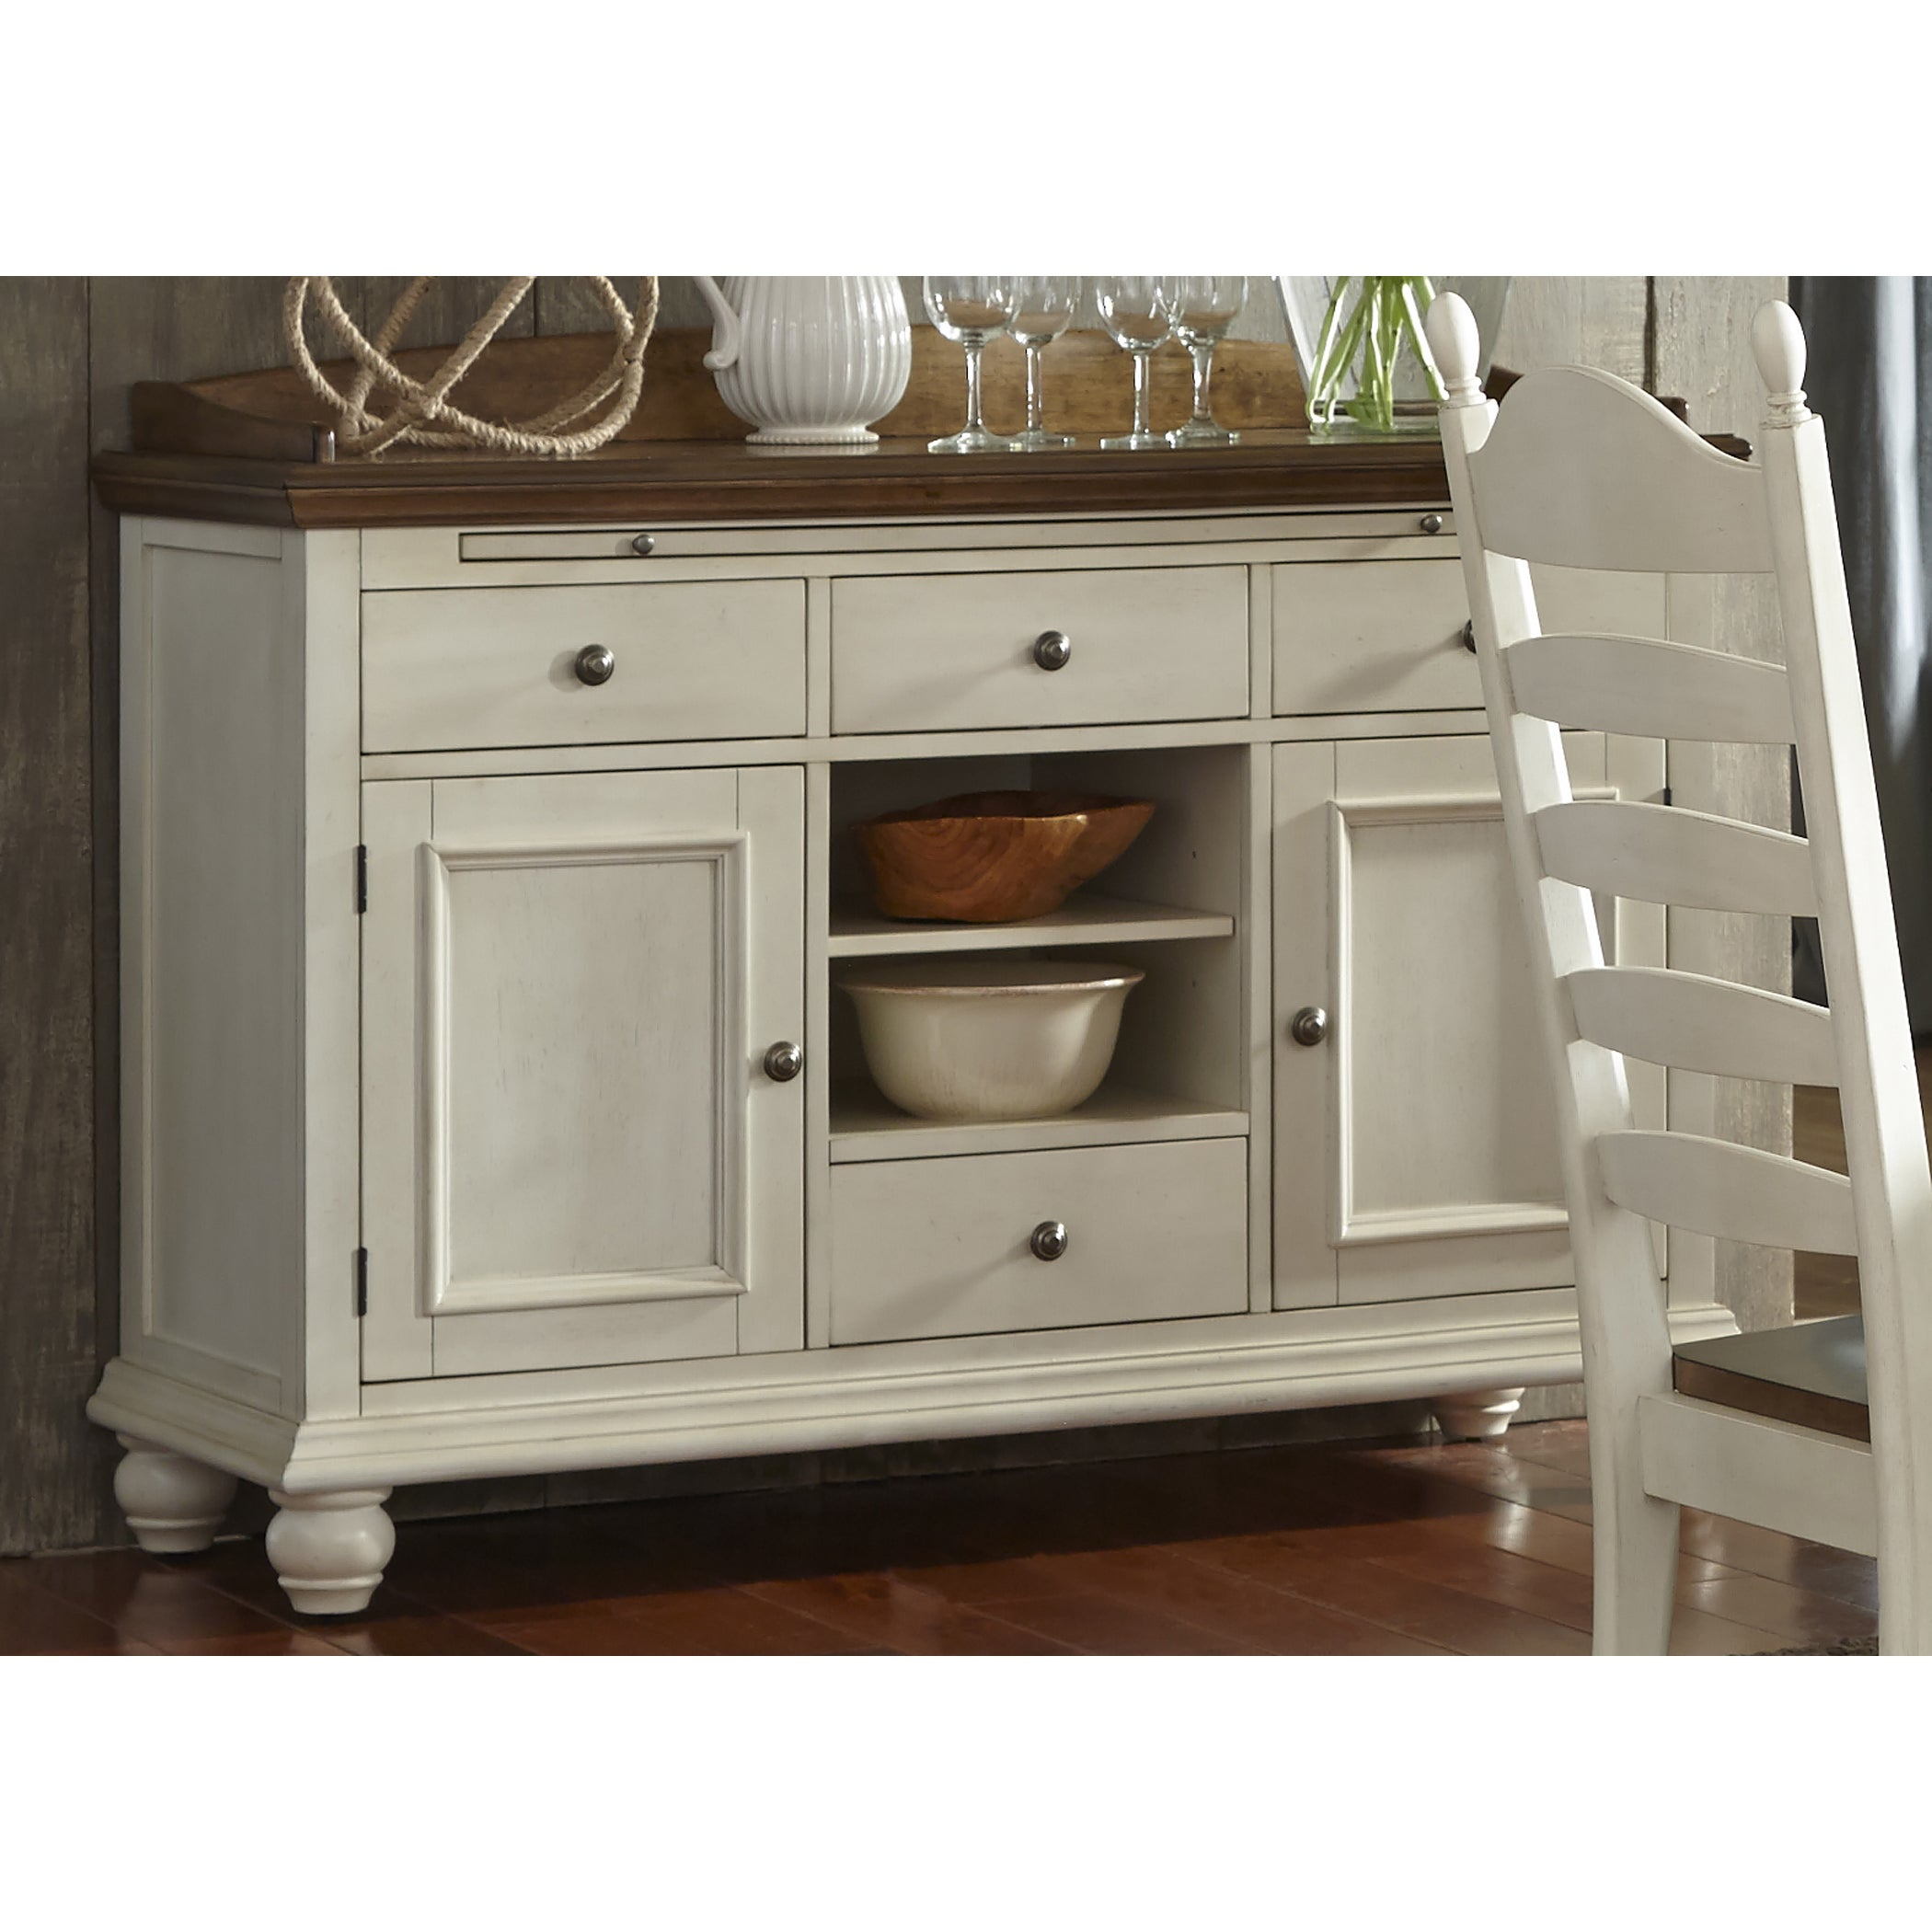 Shop Springfield Farmhouse Two Toned Sideboard Free